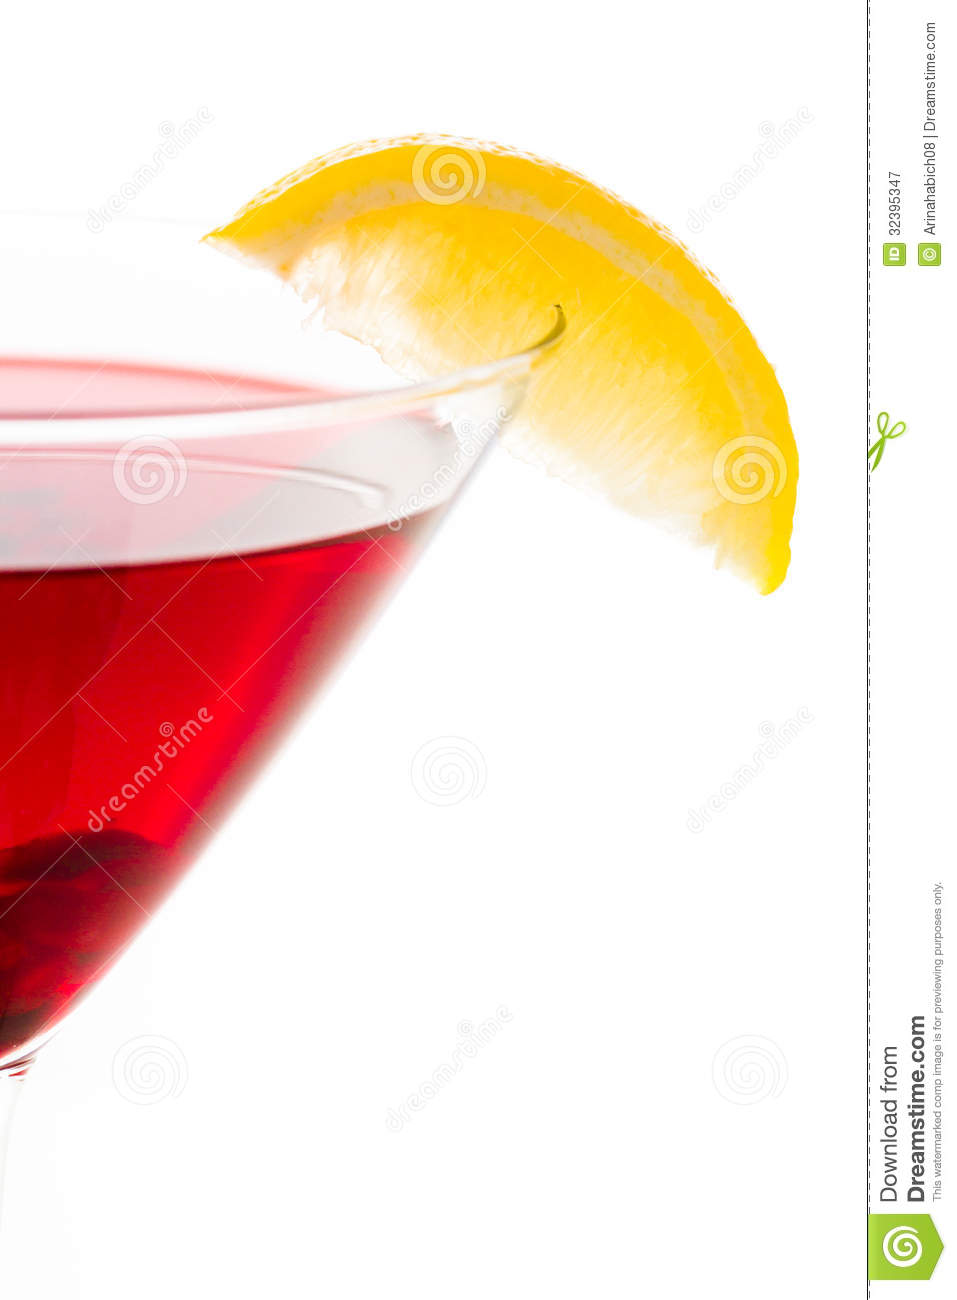 Pomegranate Cosmo Royalty Free Stock Photography - Image: 32395347